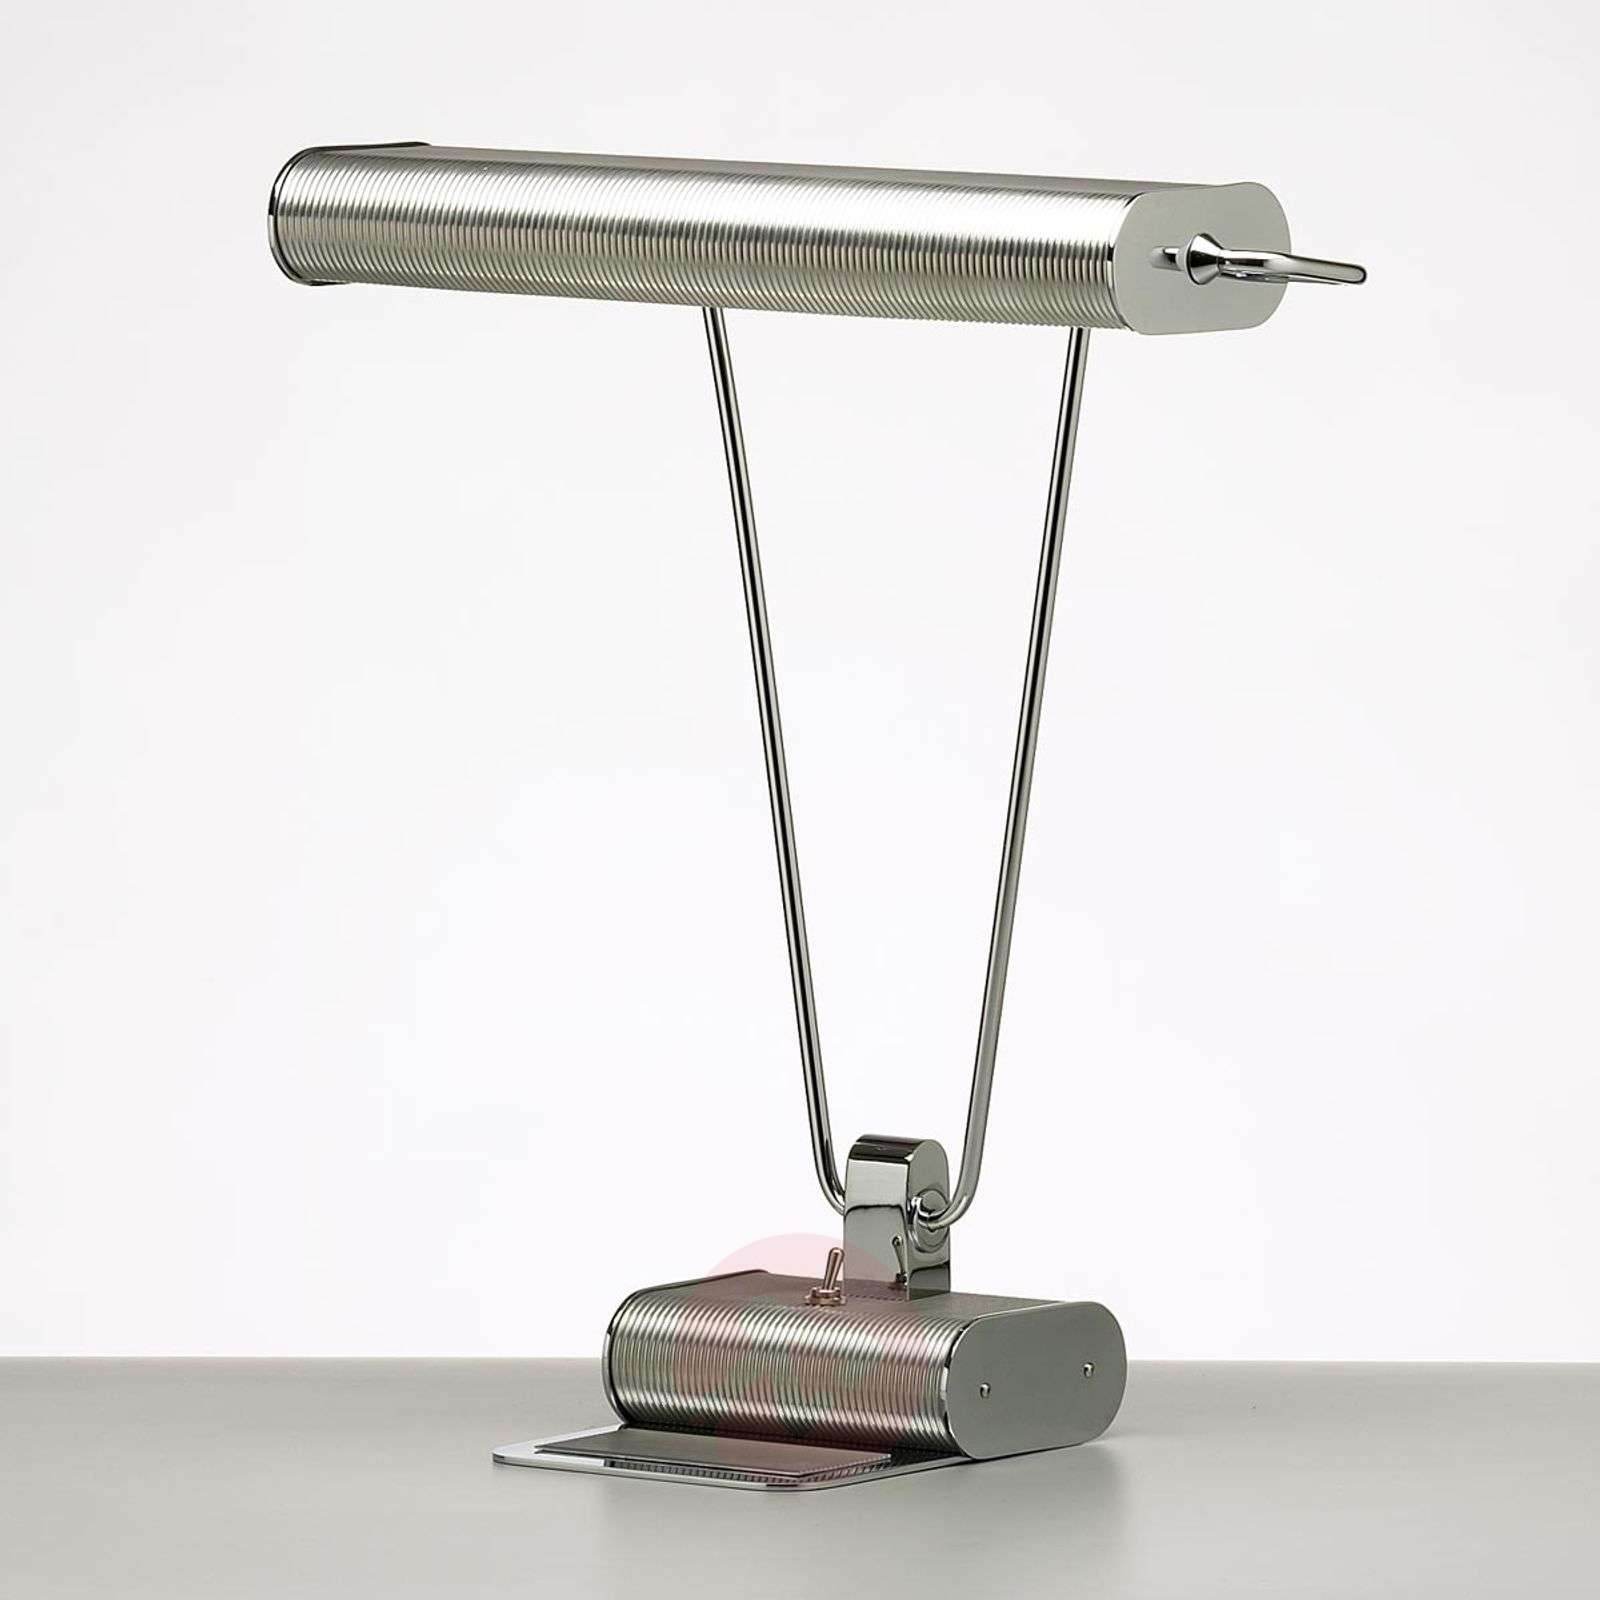 Art Deco desk lamp-9030058-01